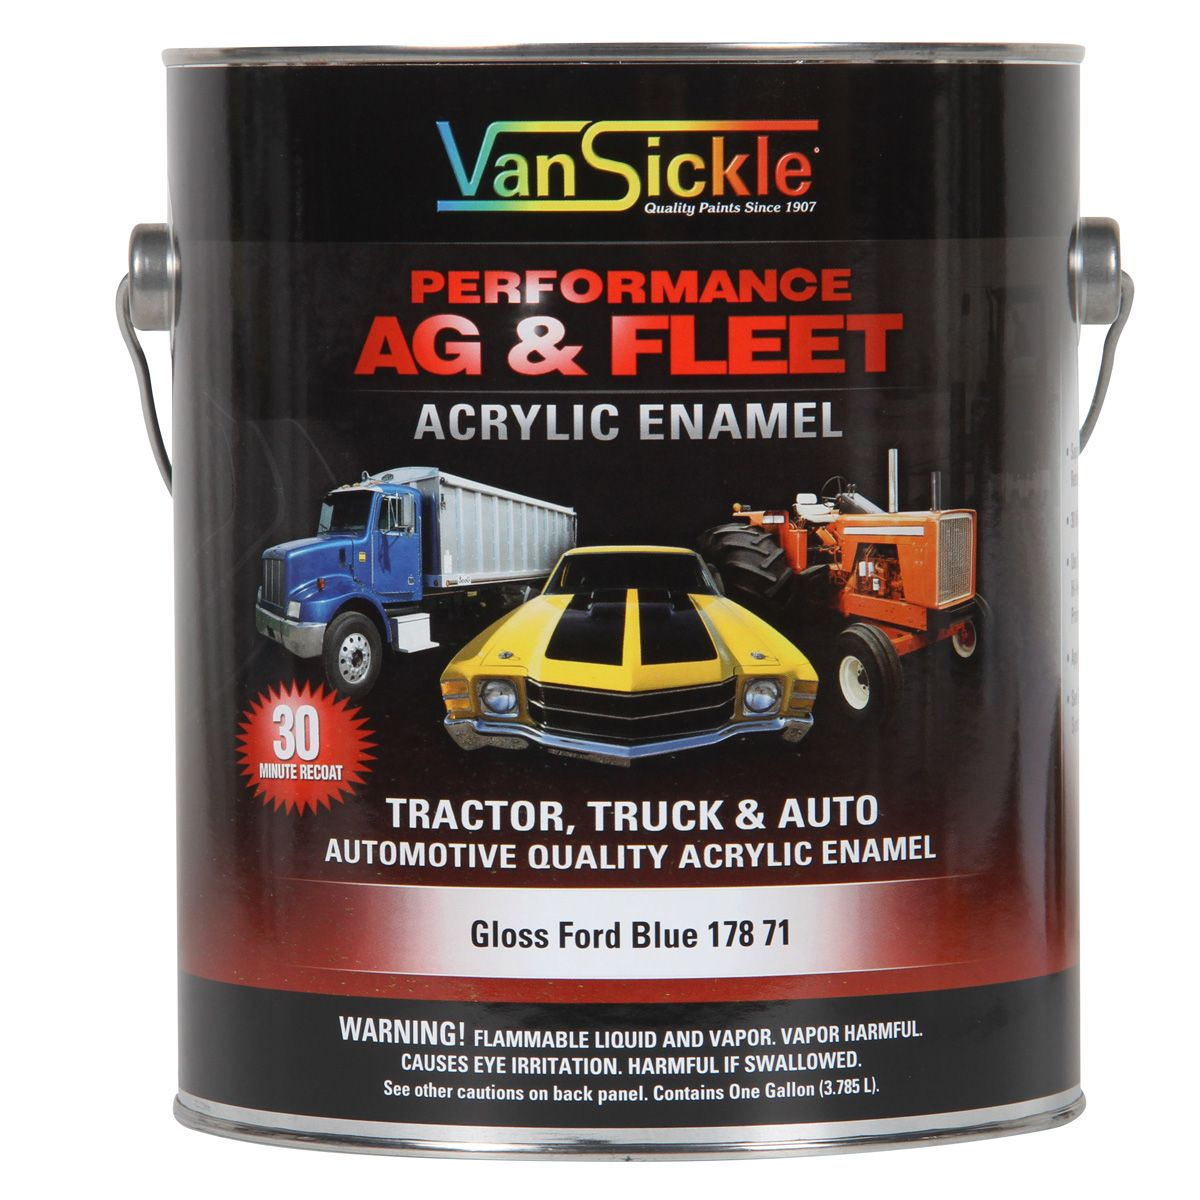 Performance Ag Fleet Is Our Fast Dry Oil Based Acrylic Formulation That Provides Automotive Type Application And Performance Fleet Performance Quality Paint